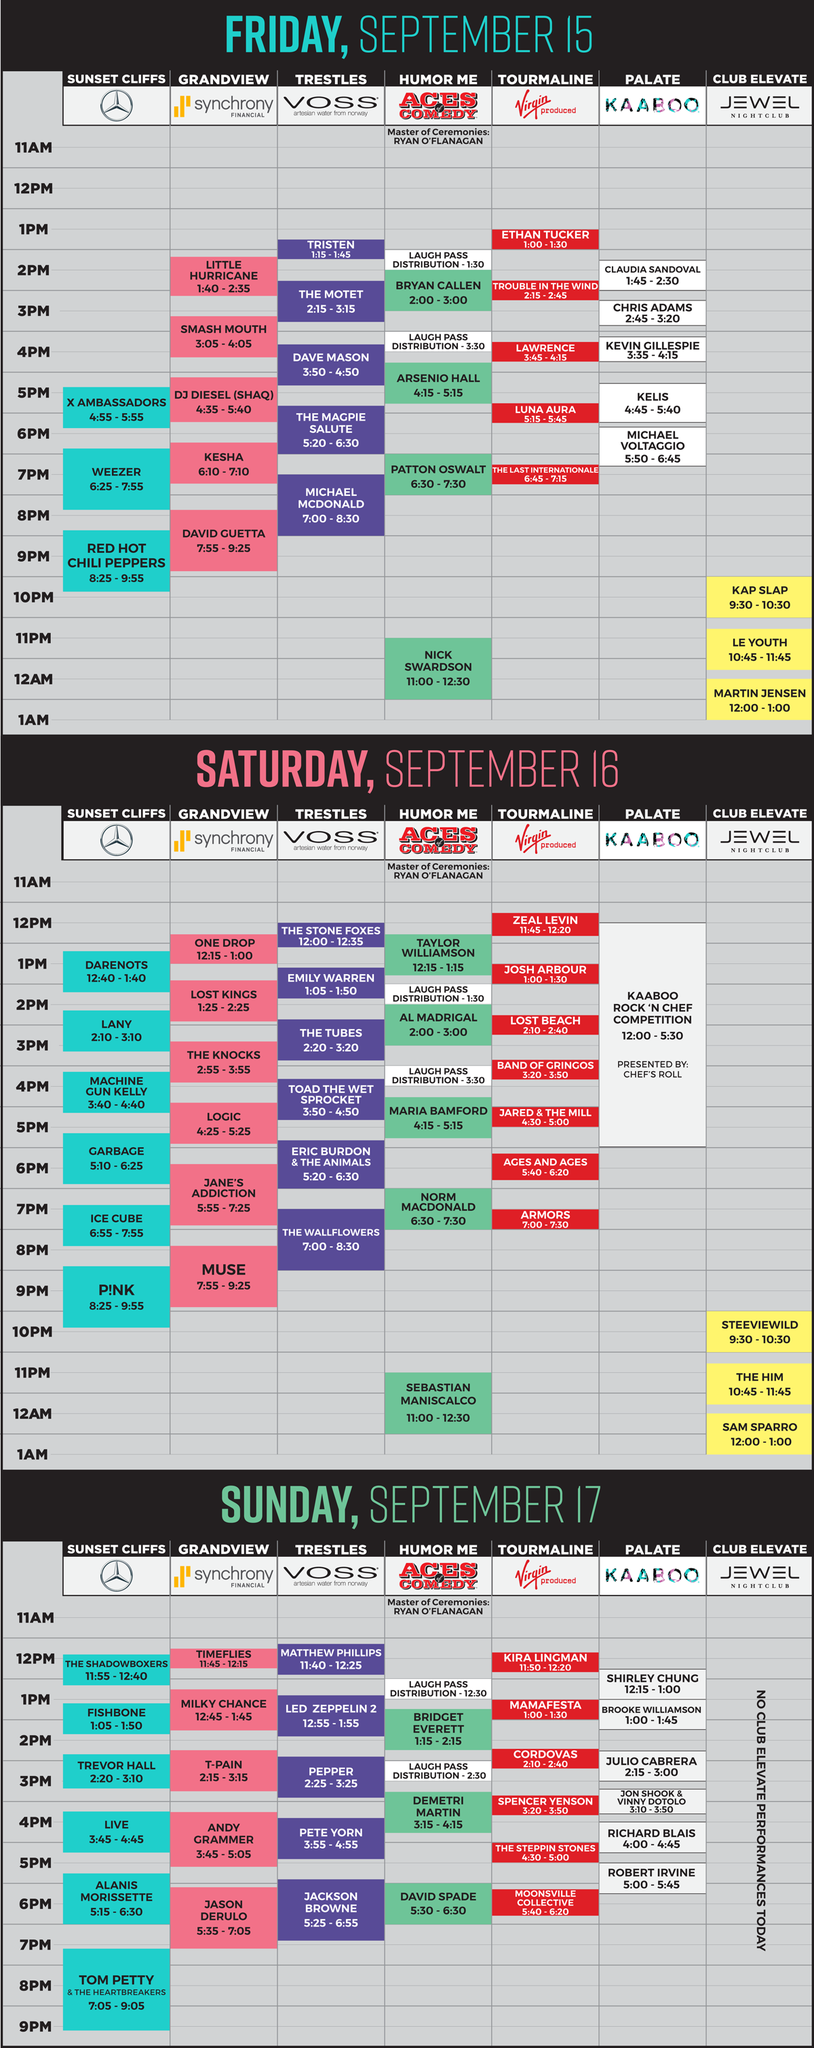 KAABOO 2017 performance schedule.